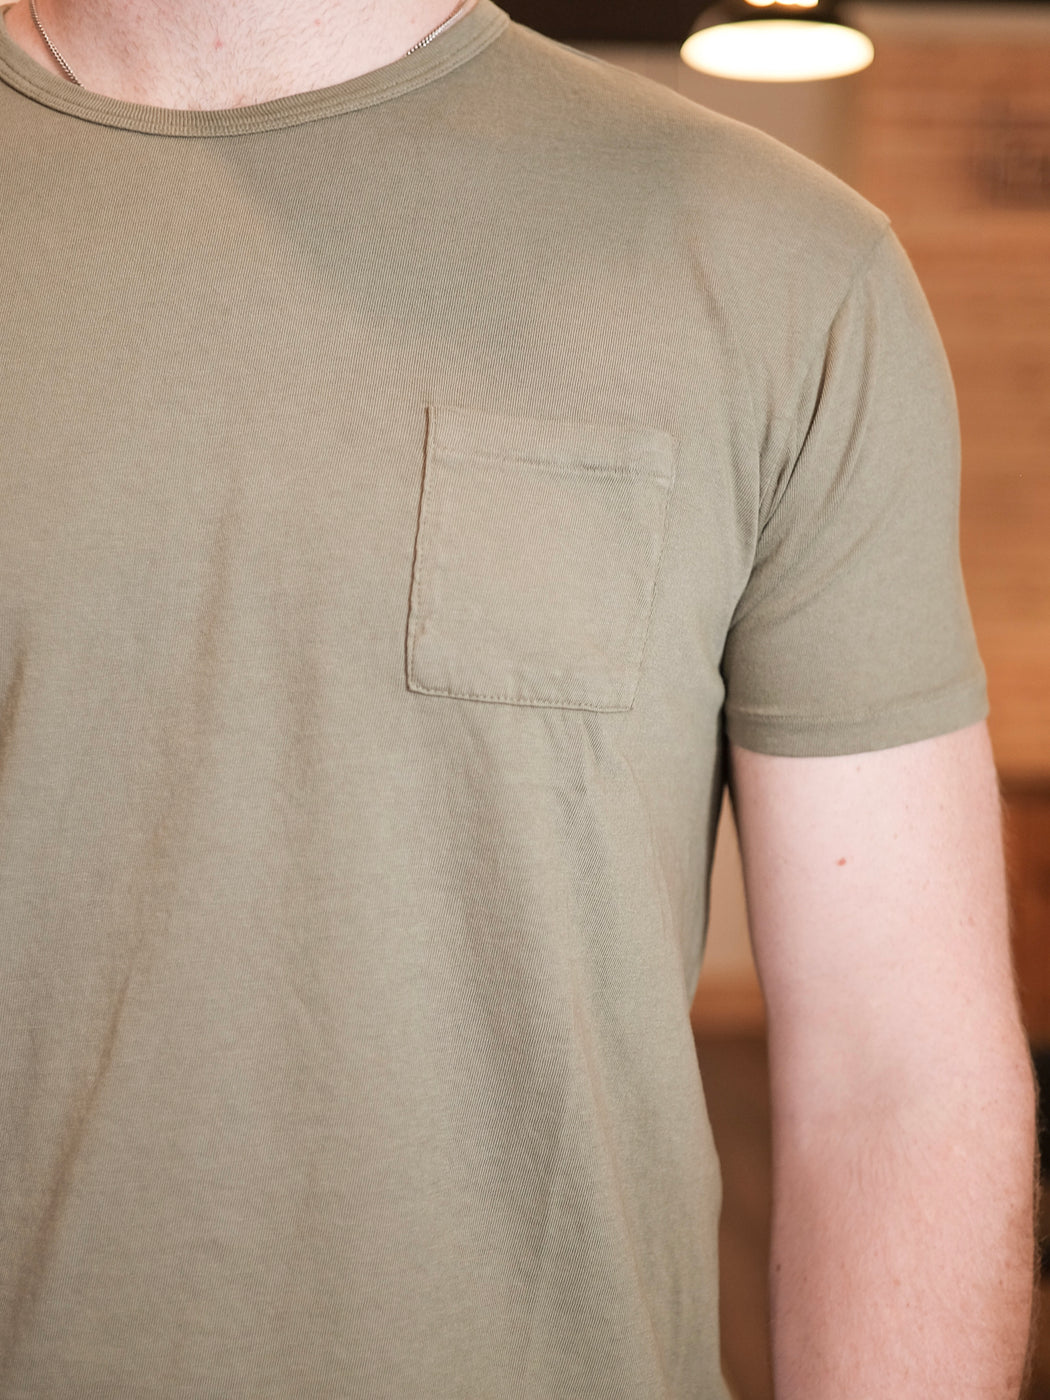 Short Sleeve Pocket Tube Tee, Knickerbocker, - Felding Co